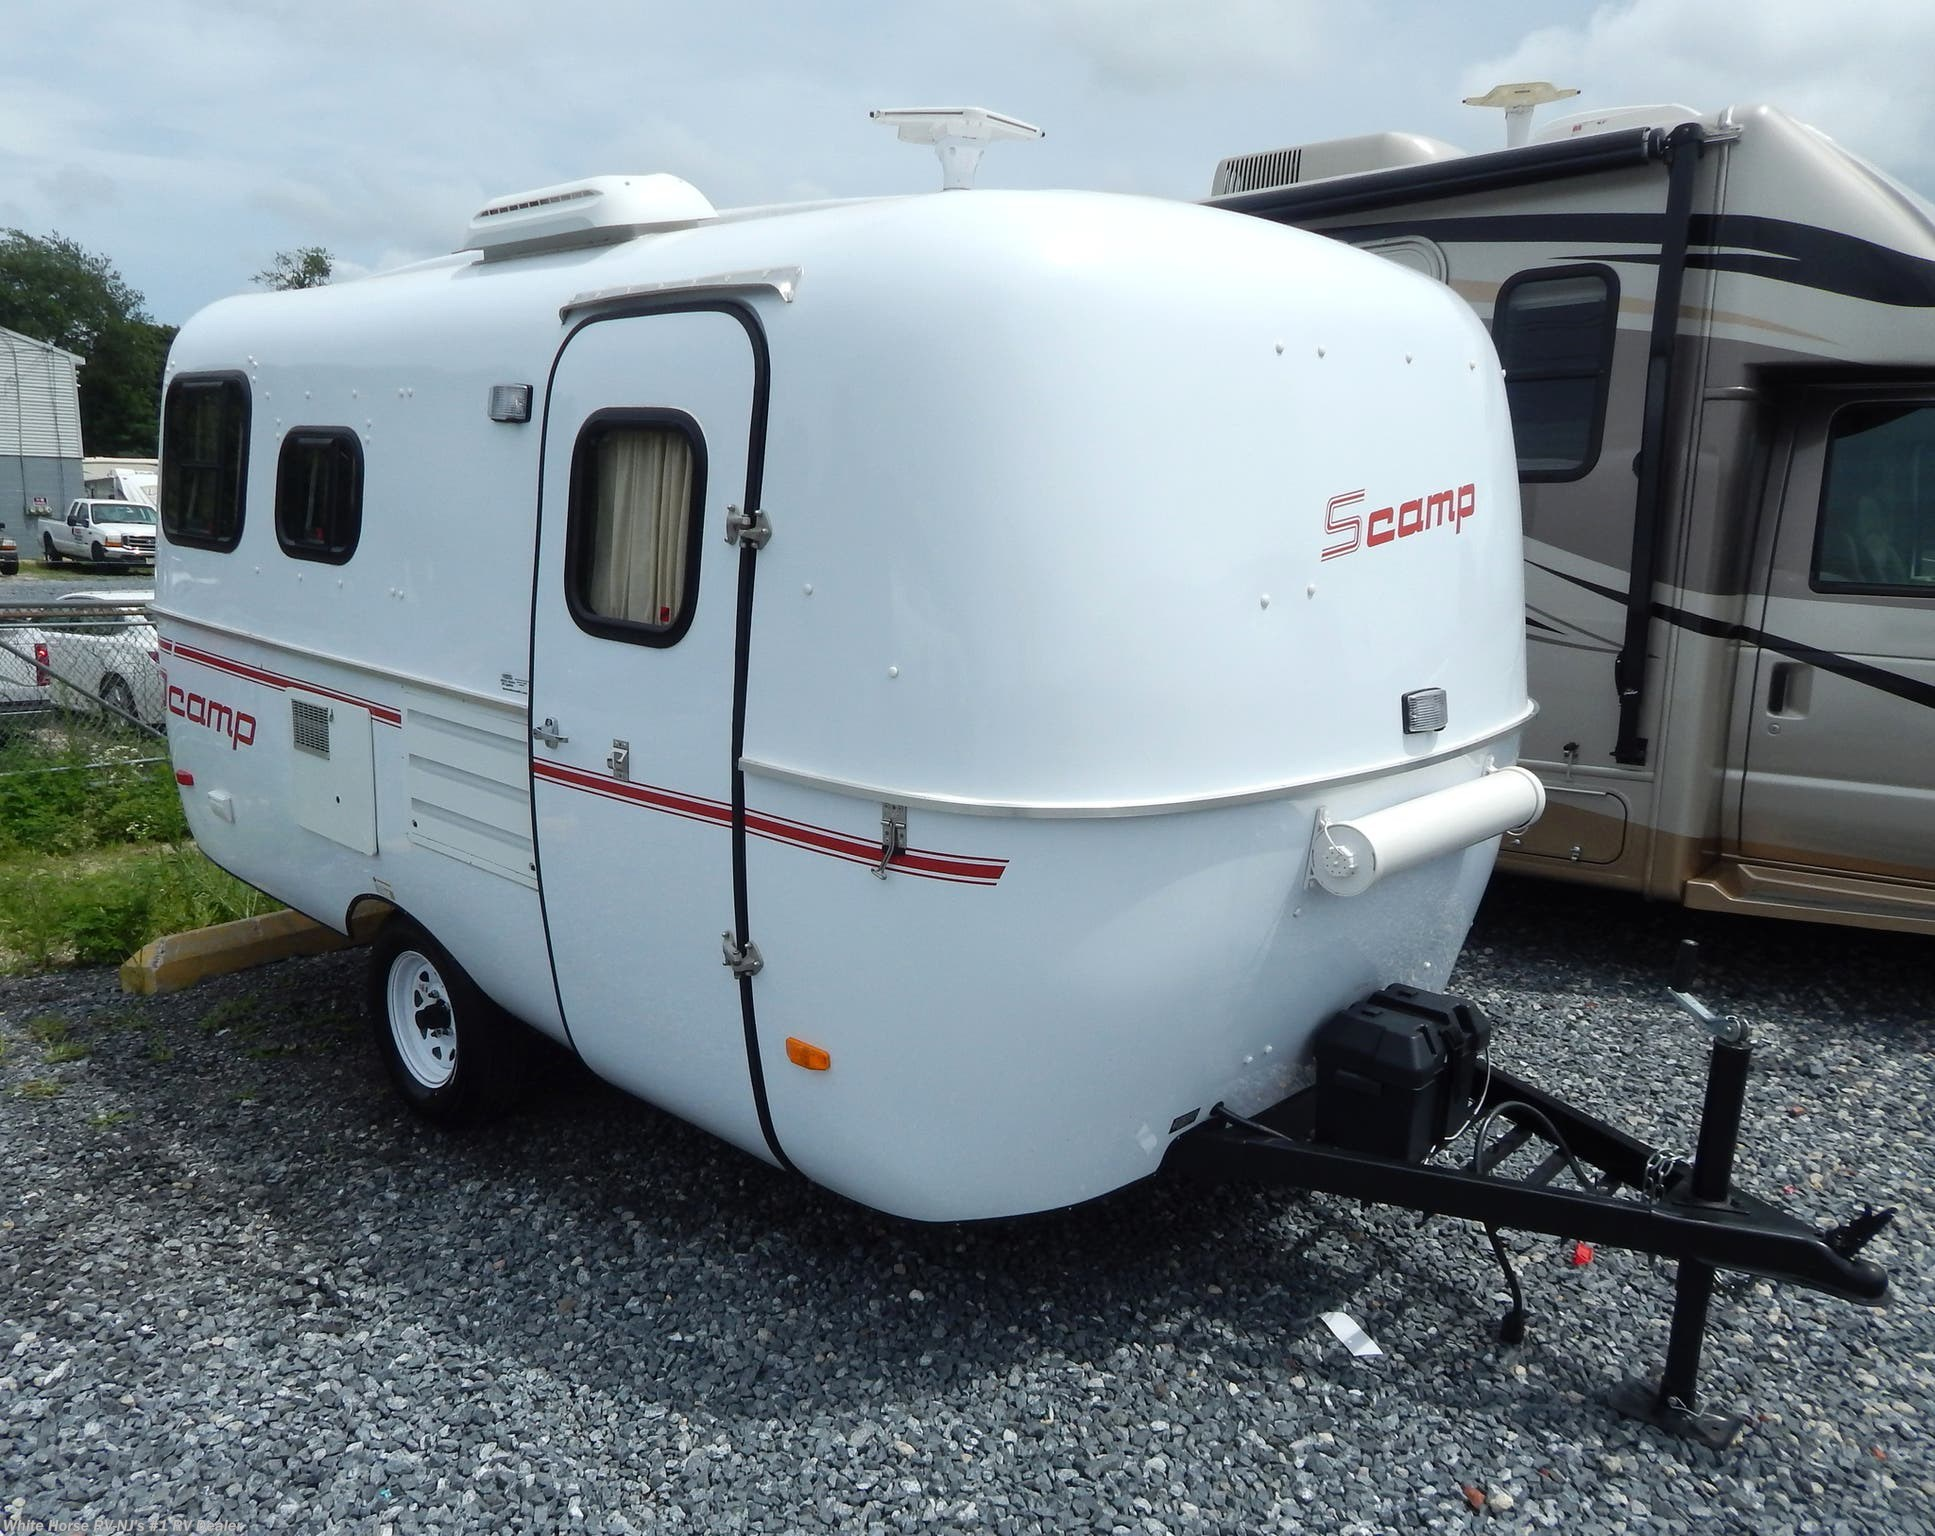 2016 Scamp Rv 16 Layout 6 For Sale In Williamstown Nj 08094 Tt12125